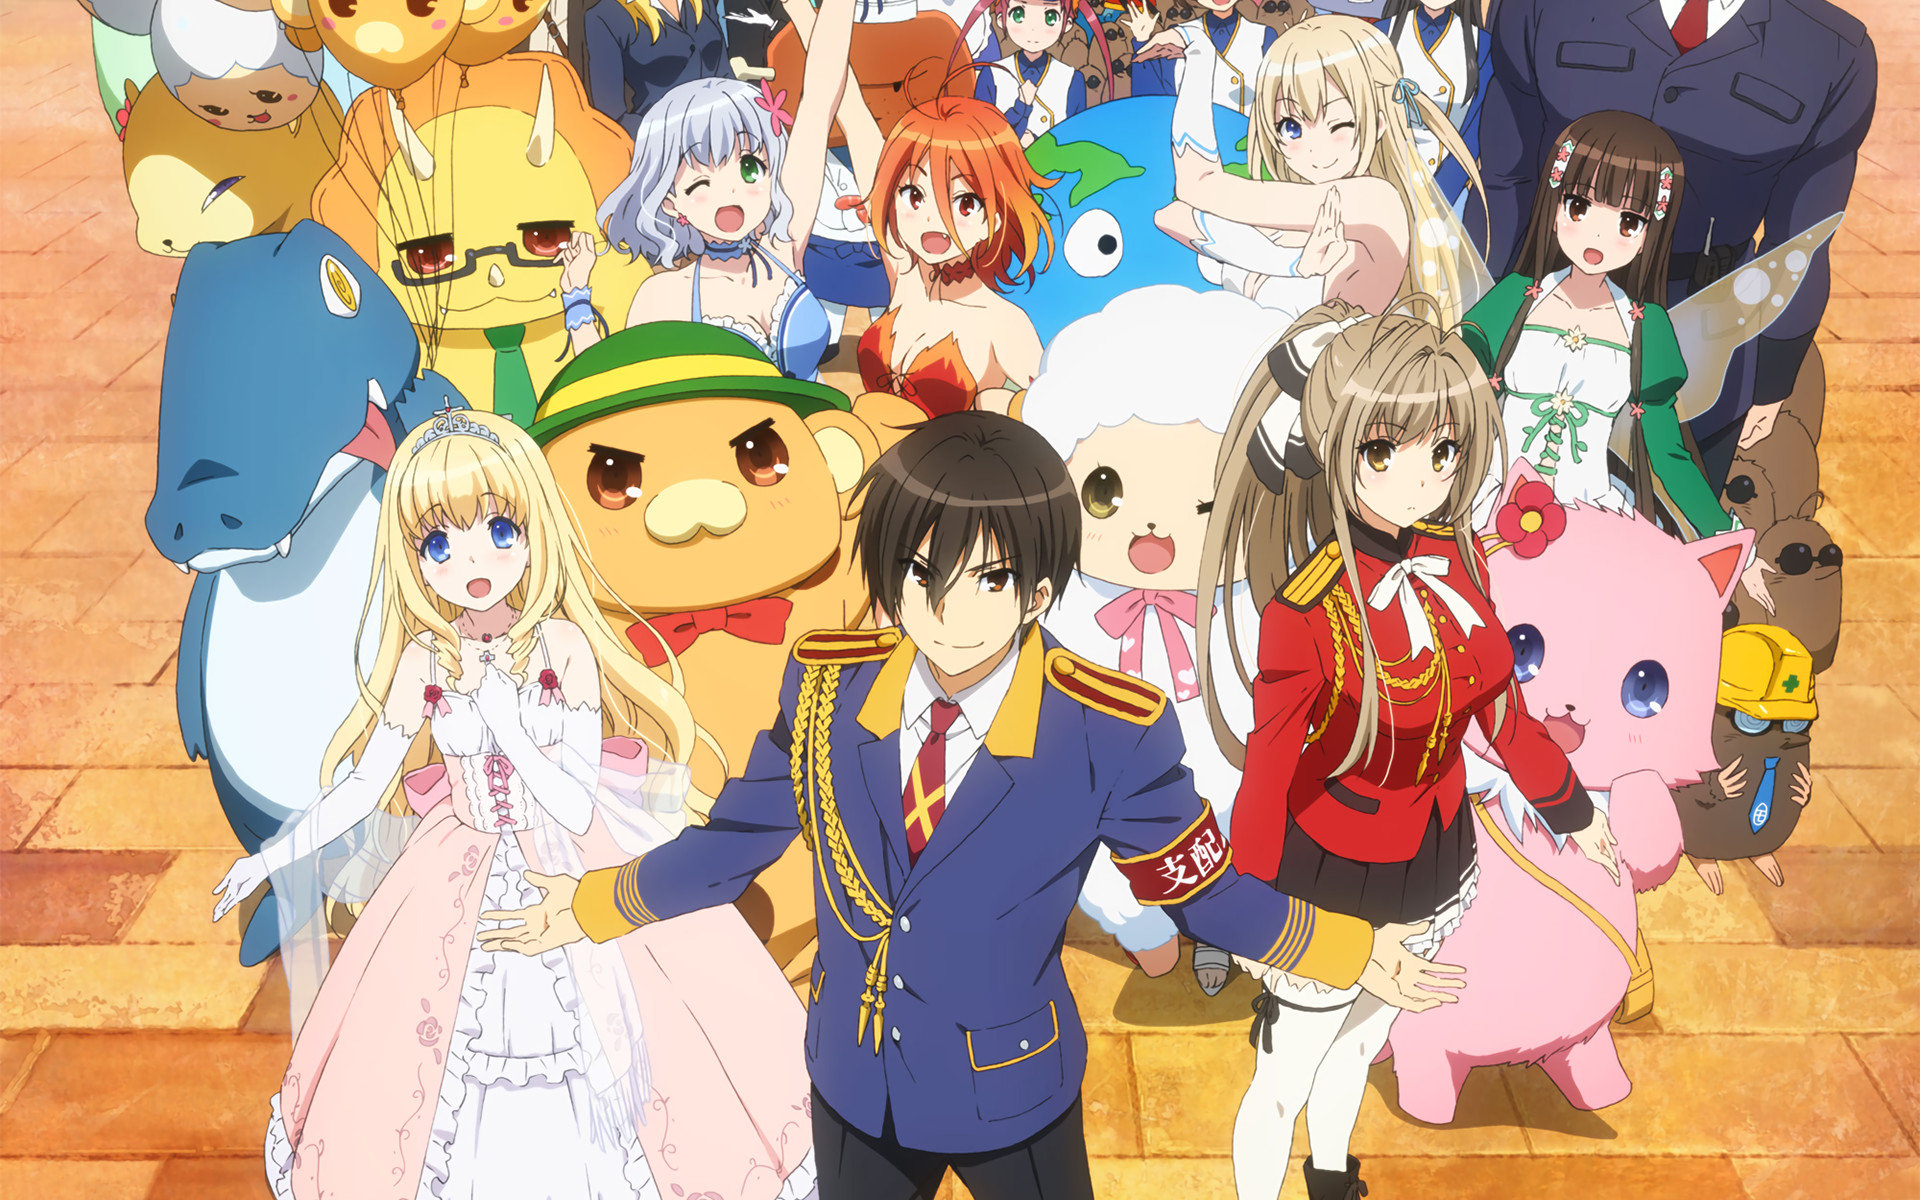 Download hd 1920x1200 Amagi Brilliant Park PC wallpaper ID:246282 for free